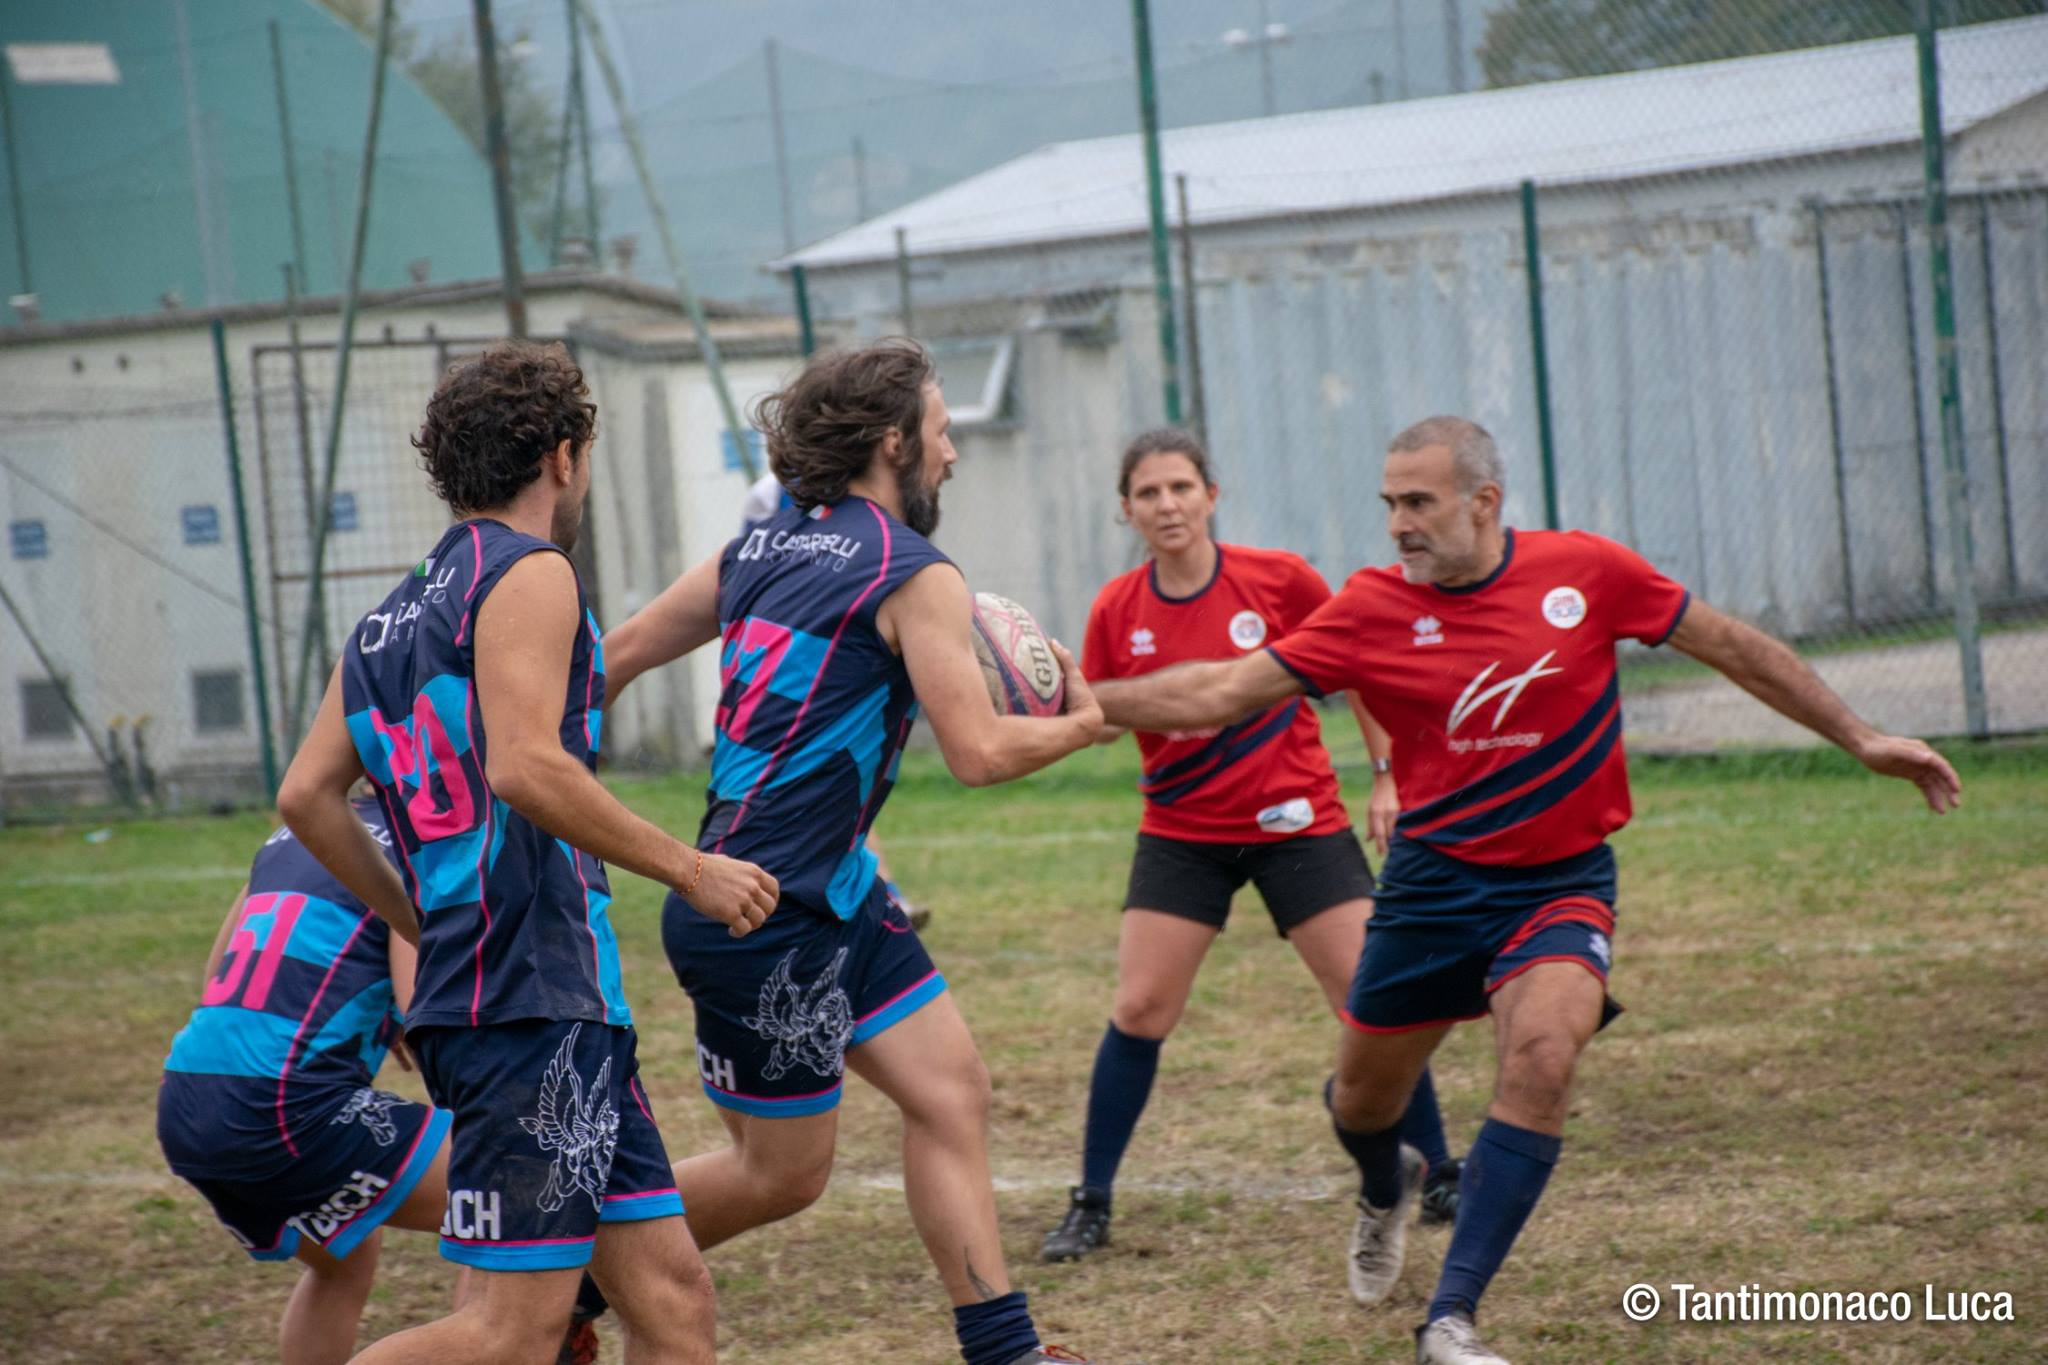 rugby touch lecco&tocco 7 ottobre 2018 (12)